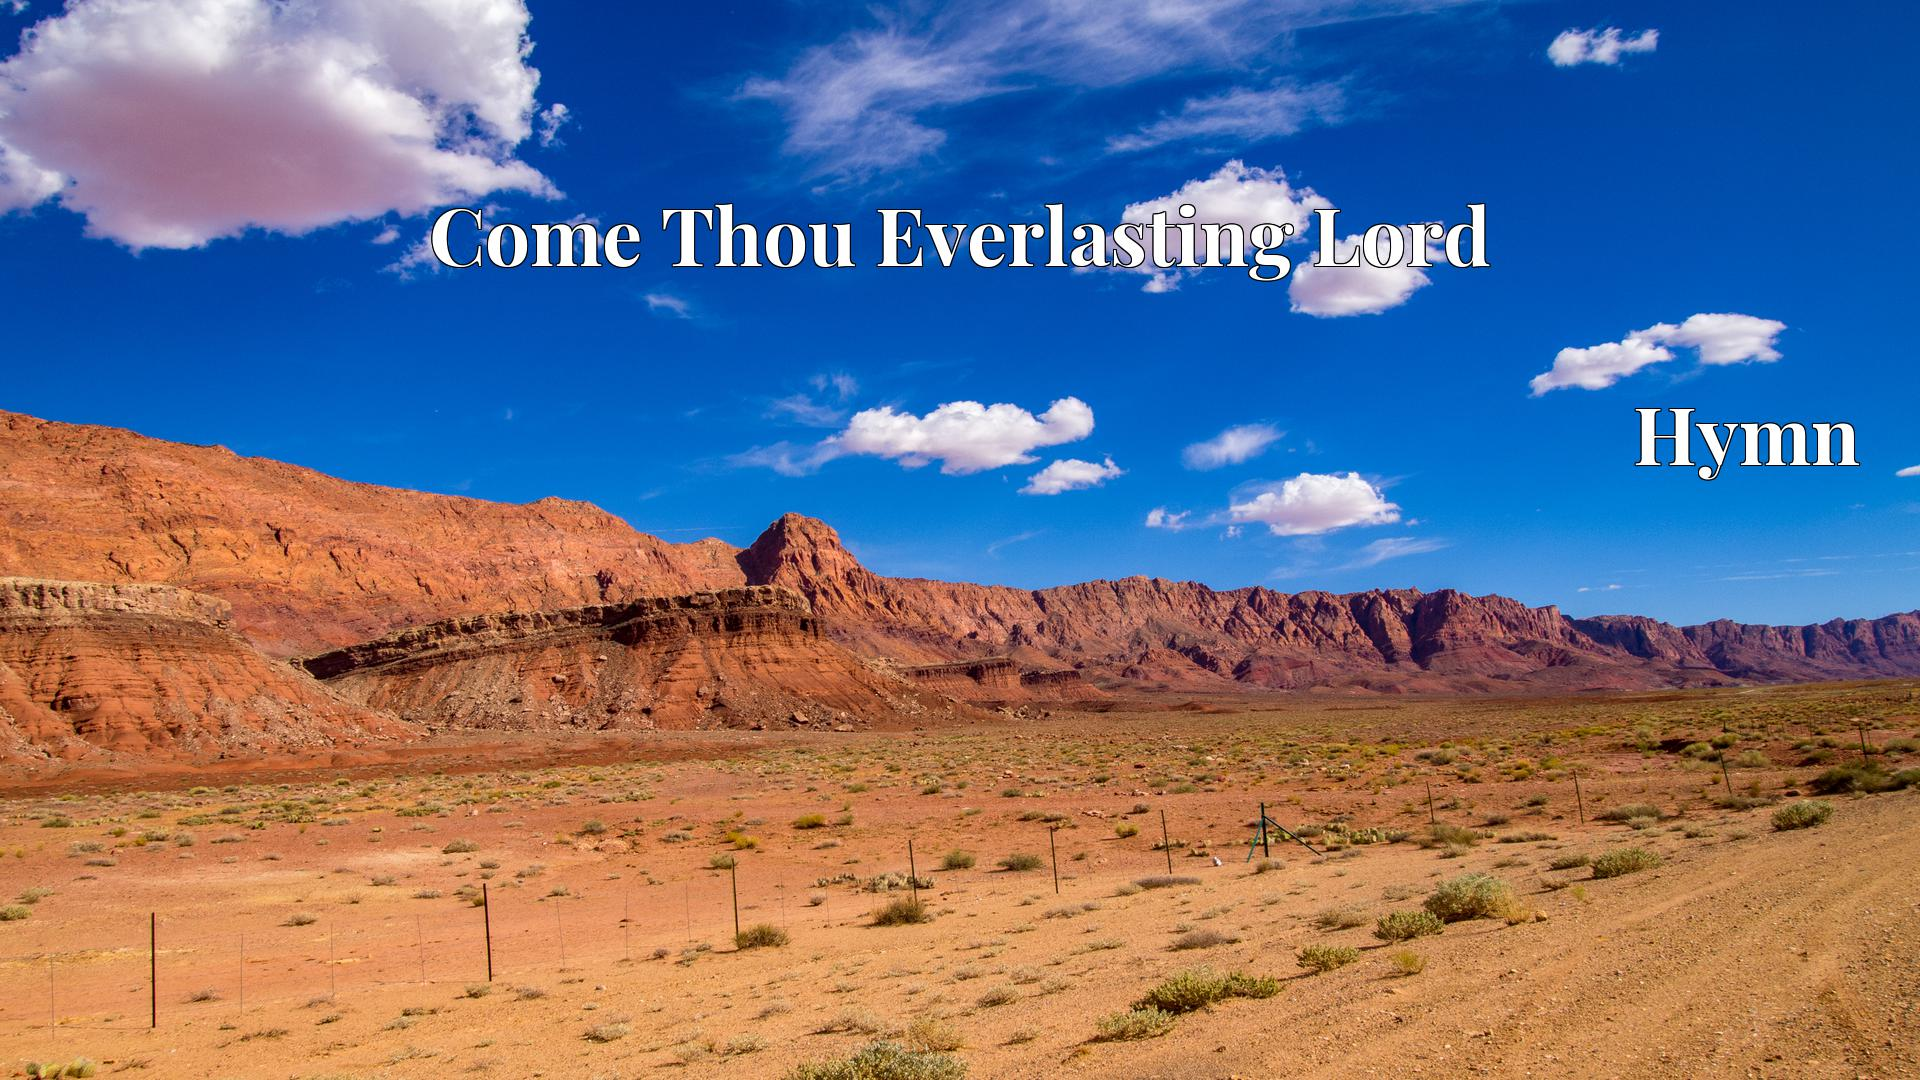 Come Thou Everlasting Lord Hymn Lyric